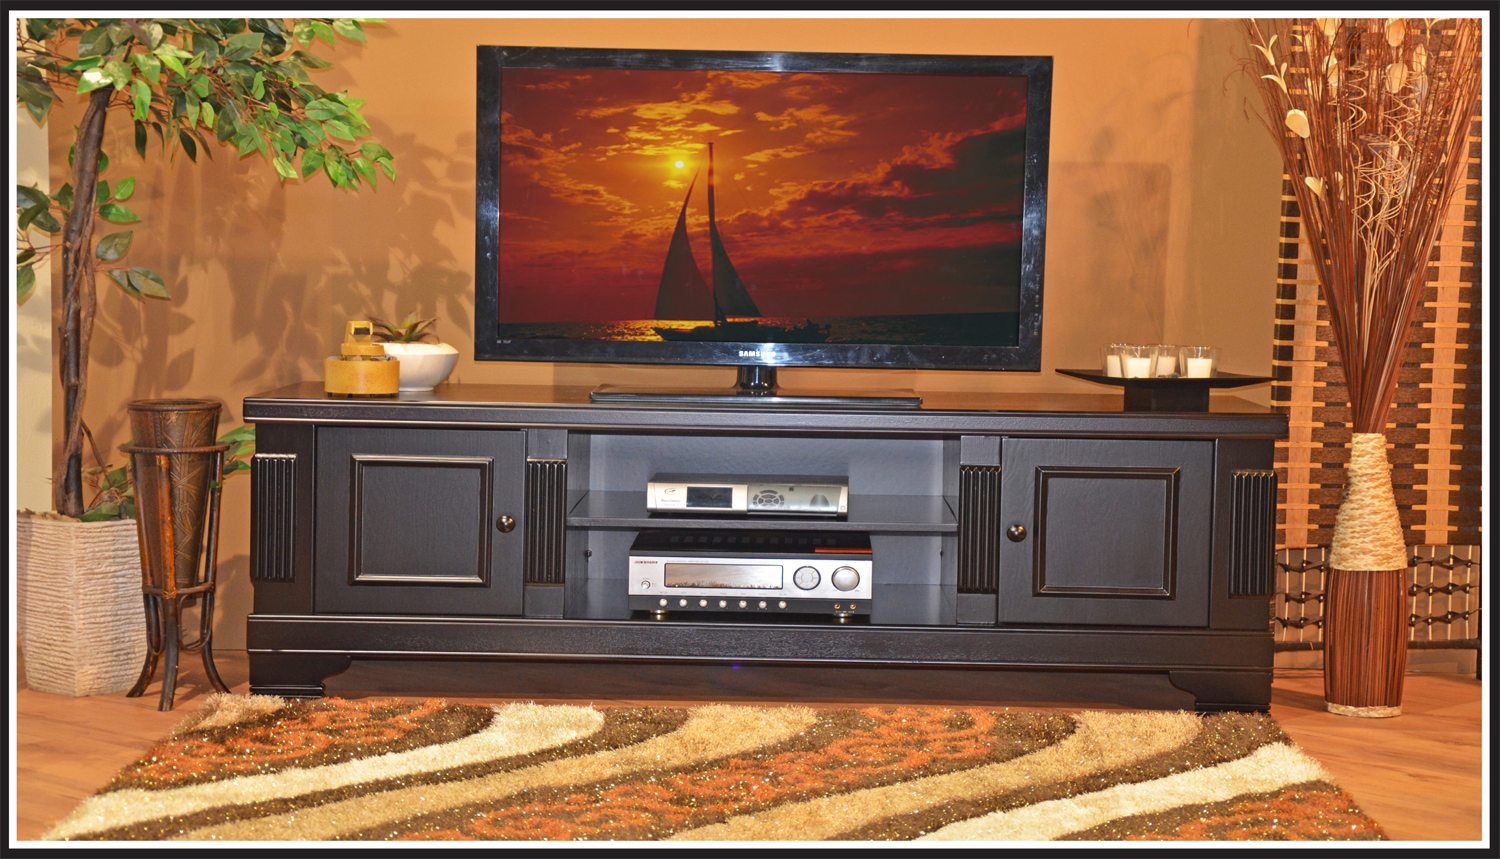 tiffany plasma tv stand  plasma stand for sale  tv stand online - tiffany plasma tv stand